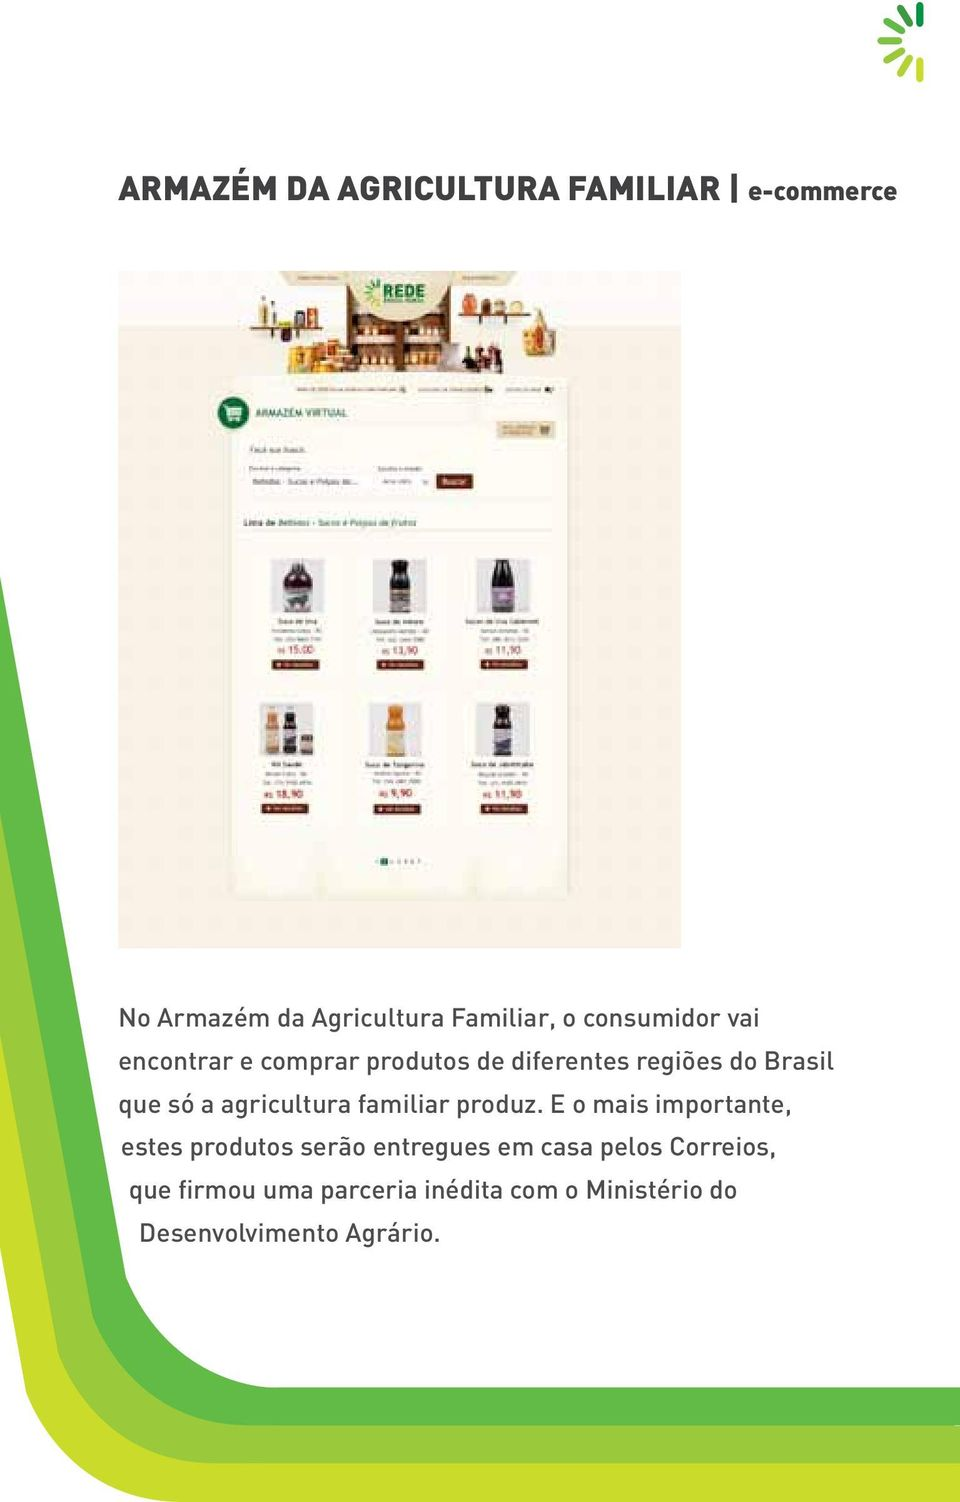 agricultura familiar produz.